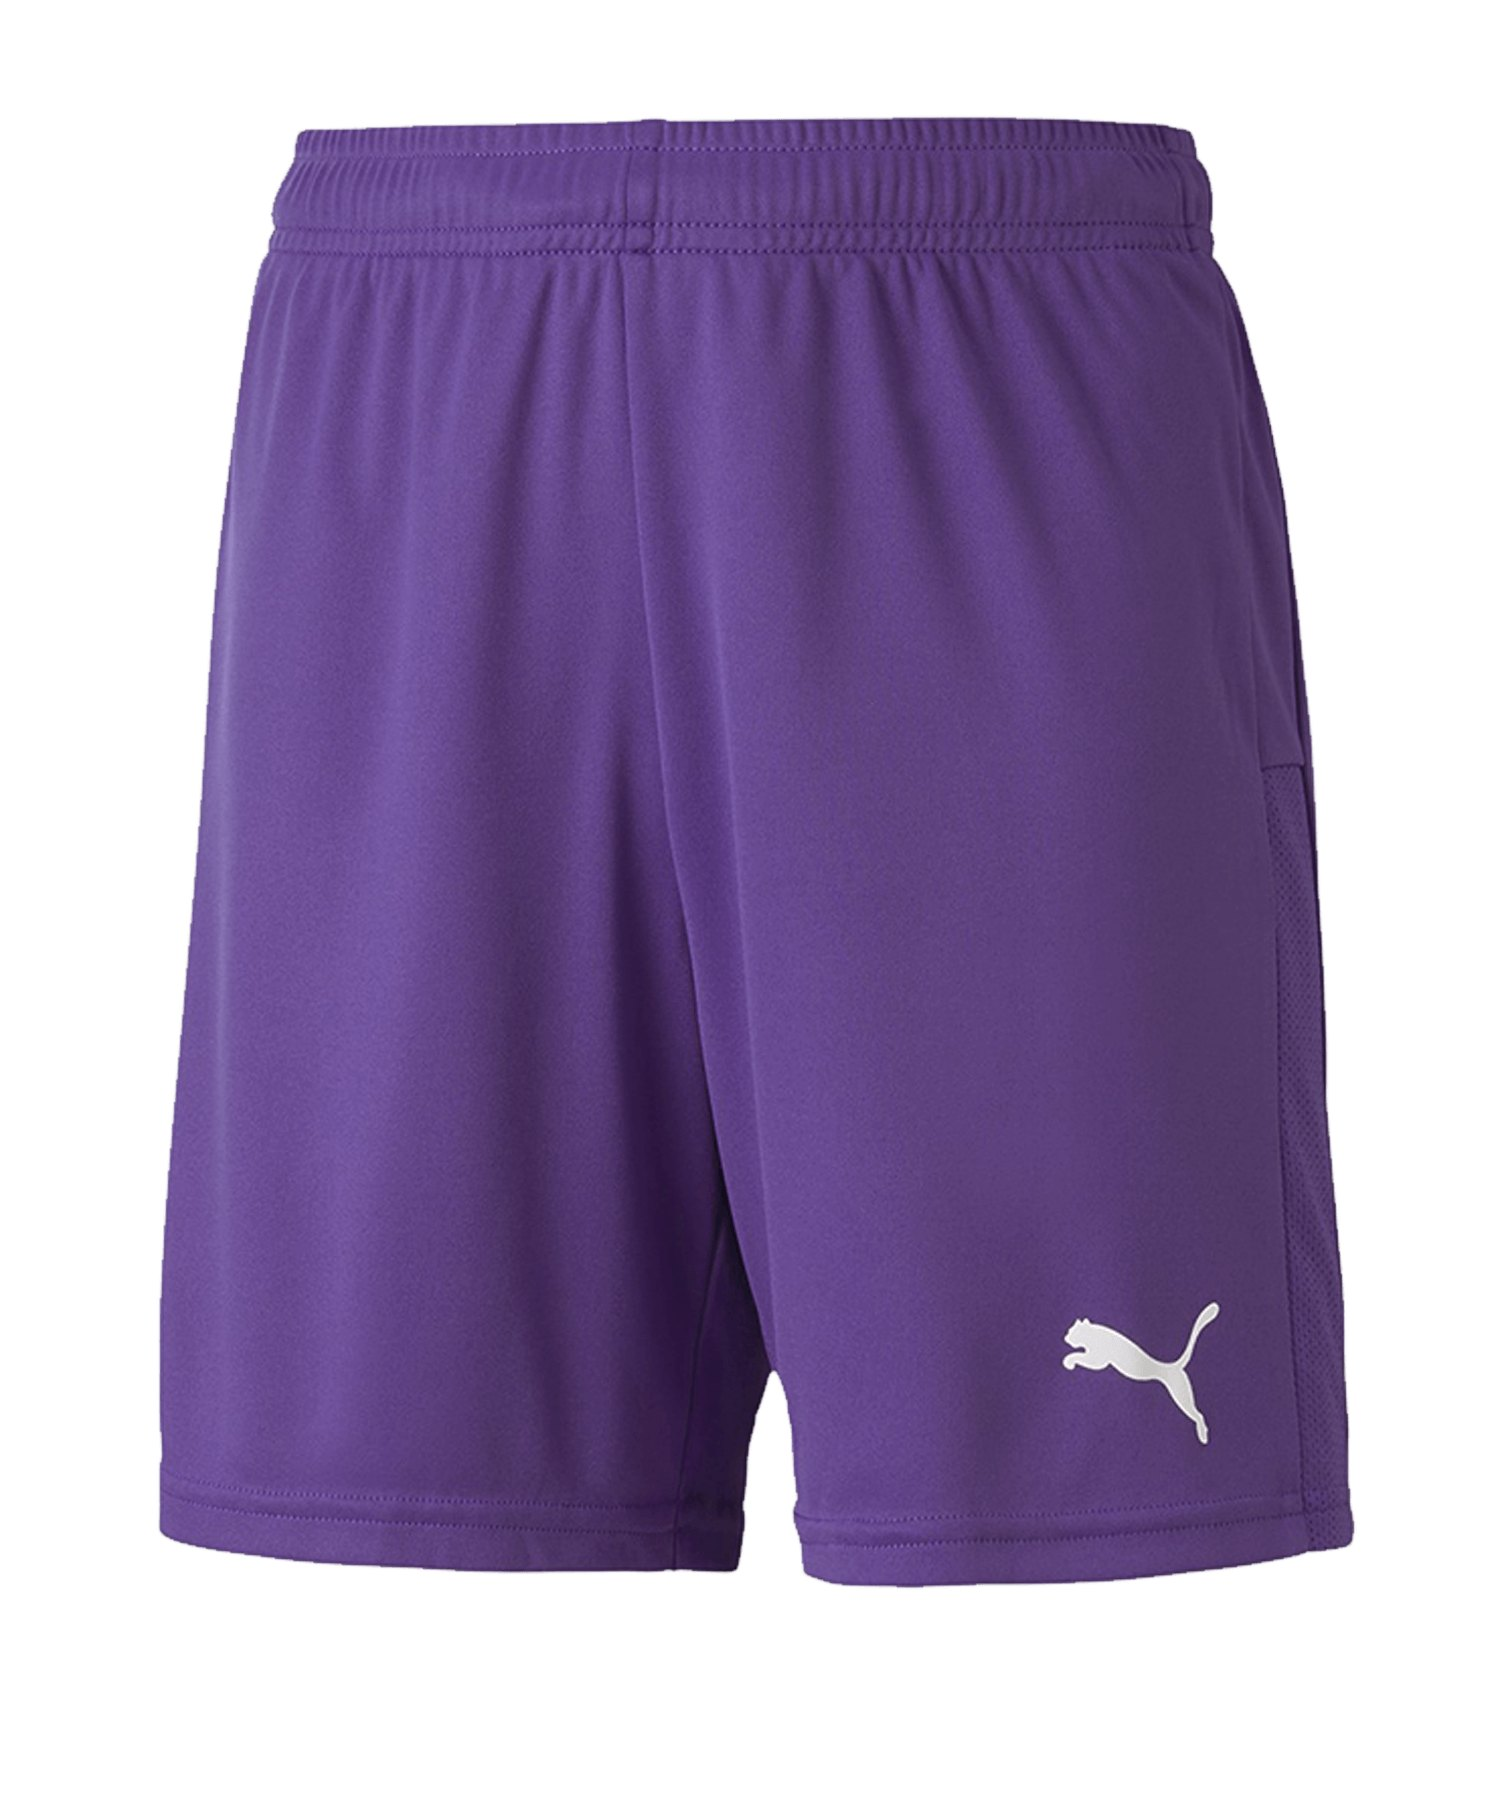 PUMA teamGOAL 23 Knit Short Kids Lila F10 - lila